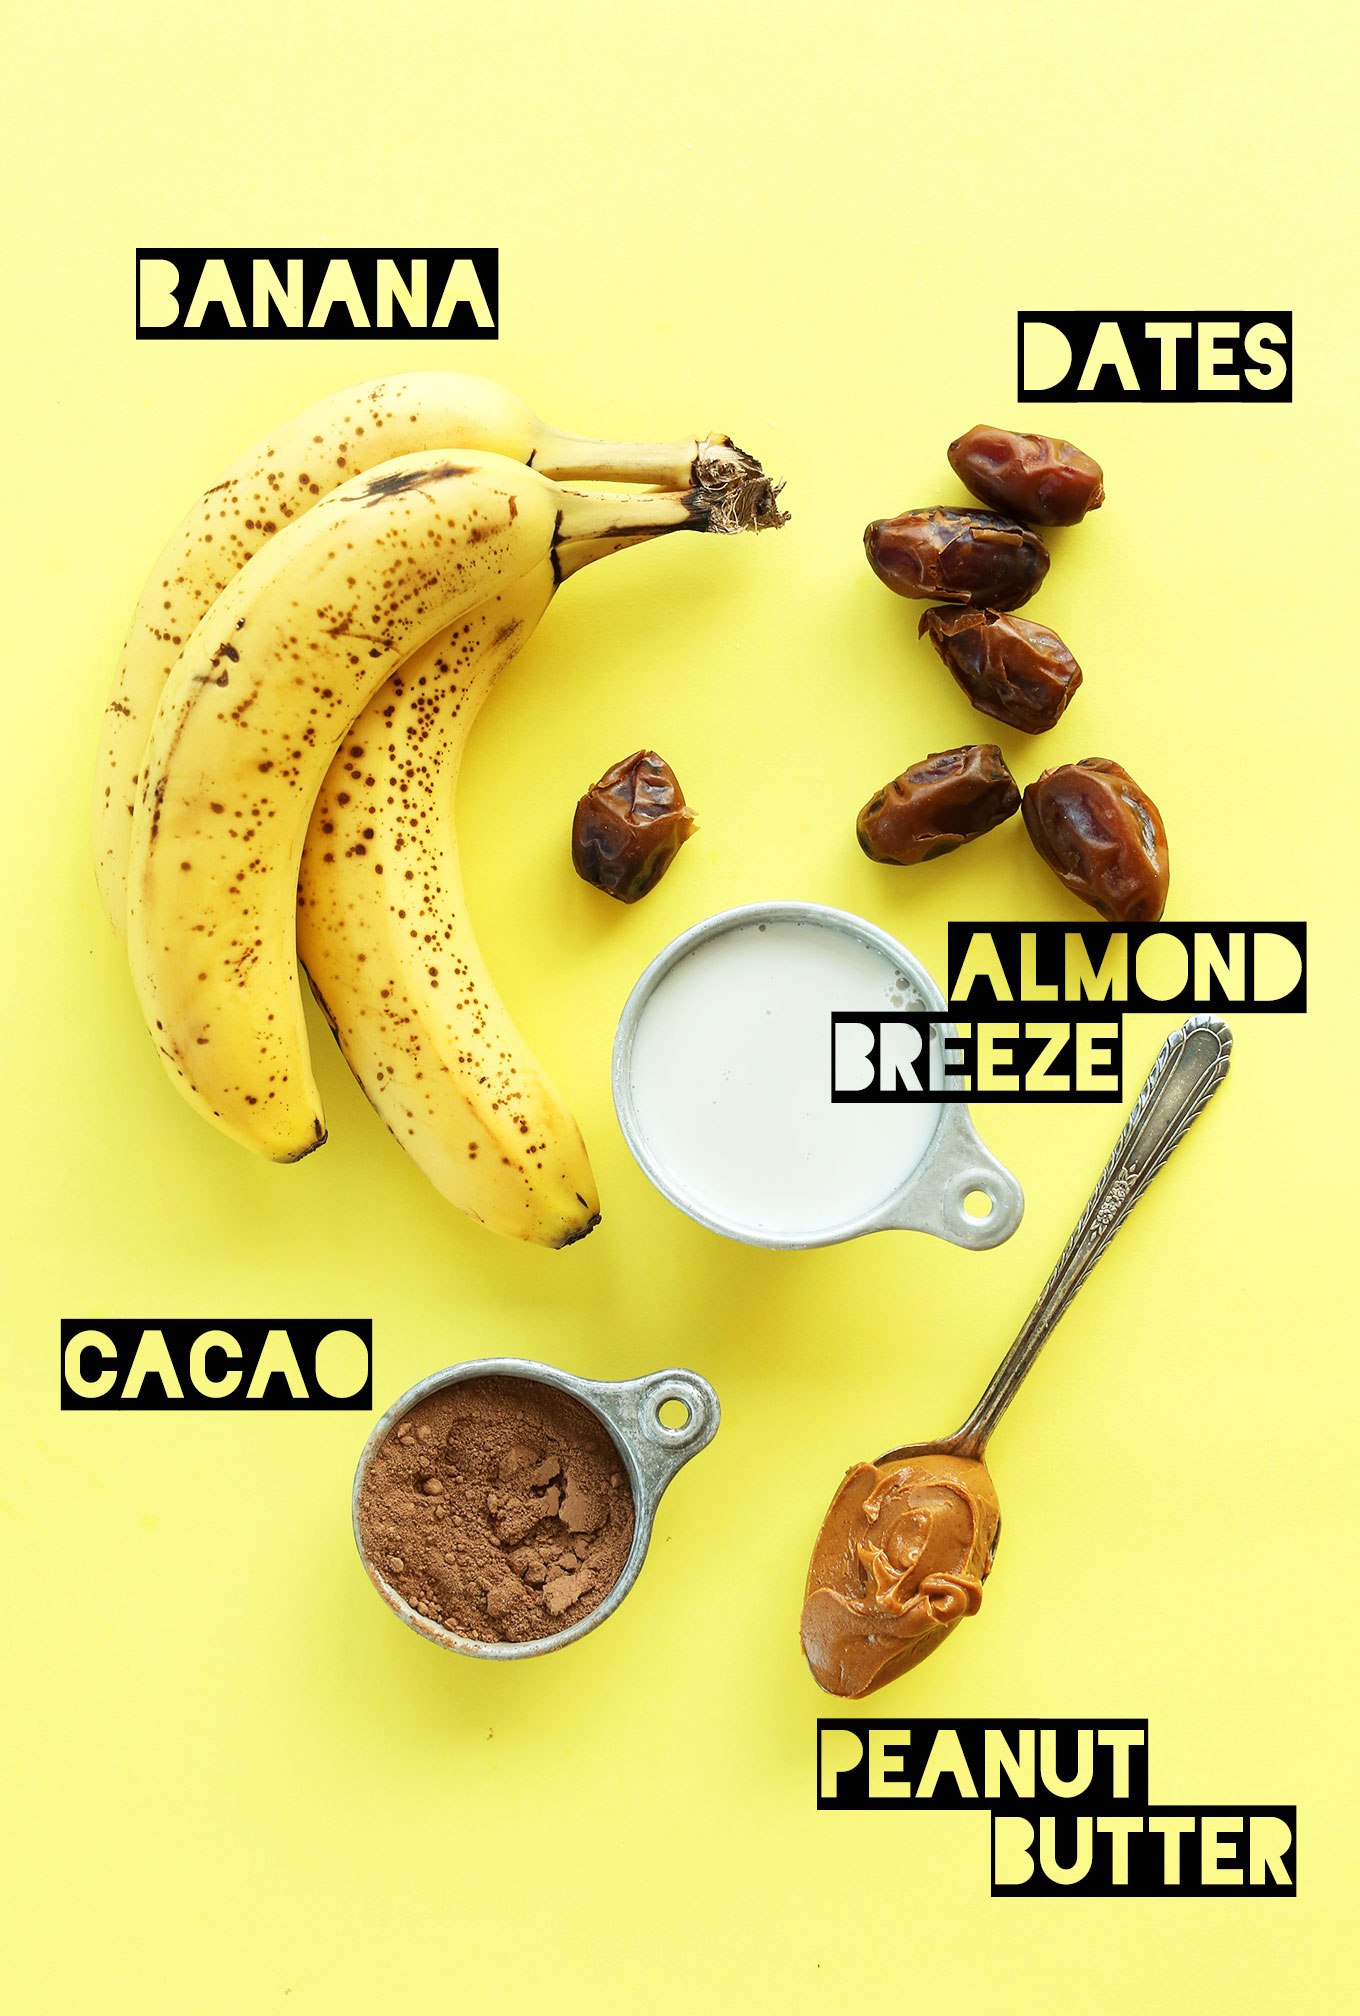 Bananas, dates, almond milk, cacao powder, and peanut butter for making a homemade vegan milkshake